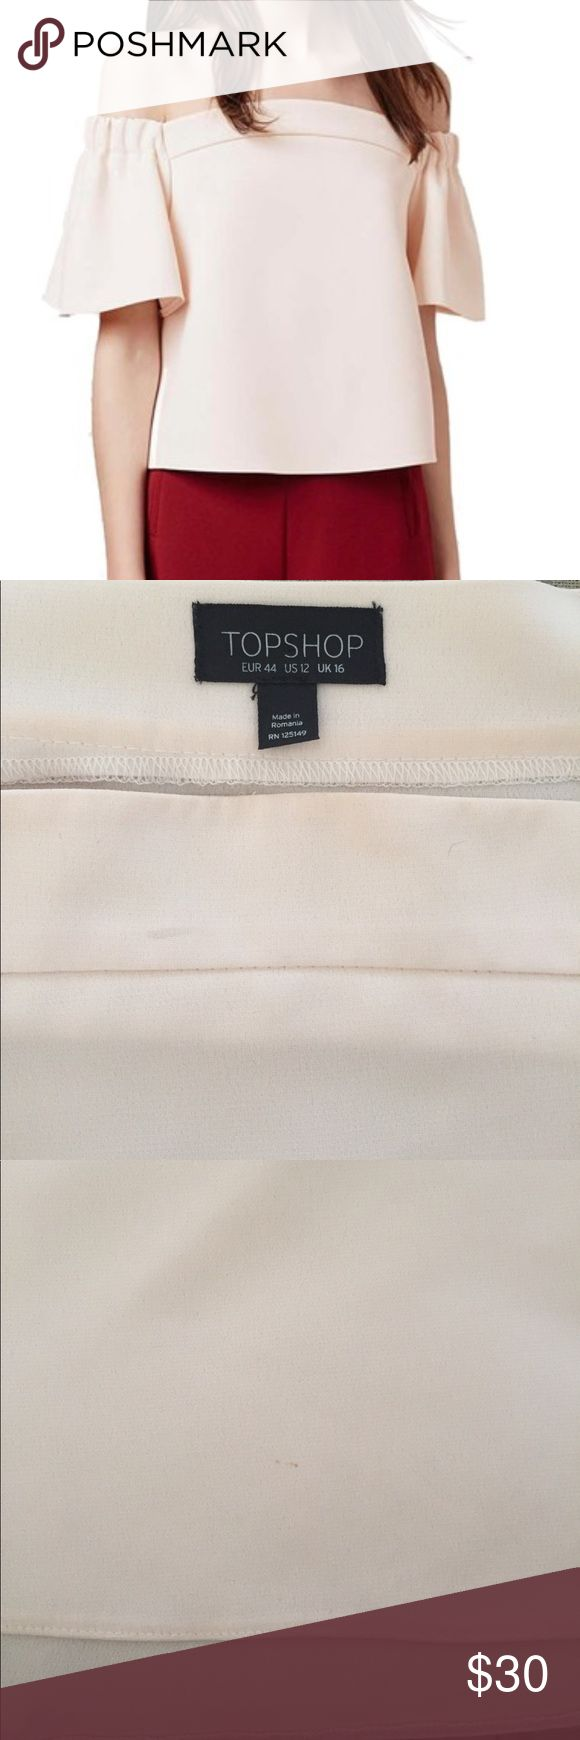 TOPSHOP Cream Bardot Top Off shoulder. Flutter sleeves. A few pin size marks. See pictures, otherwise in good used condition. Topshop Tops Blouses